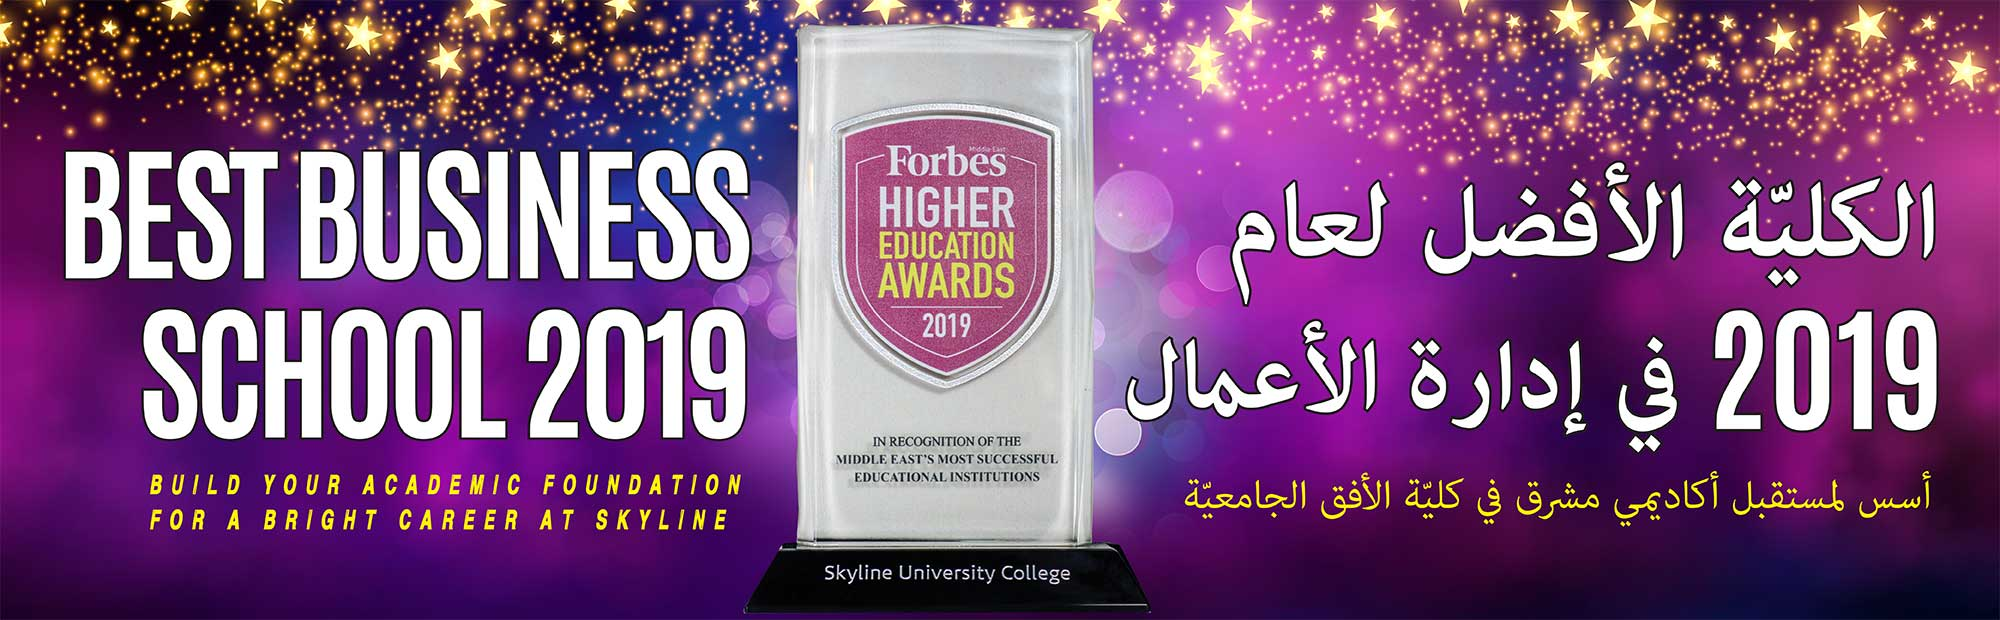 Forbes Award Best Business School